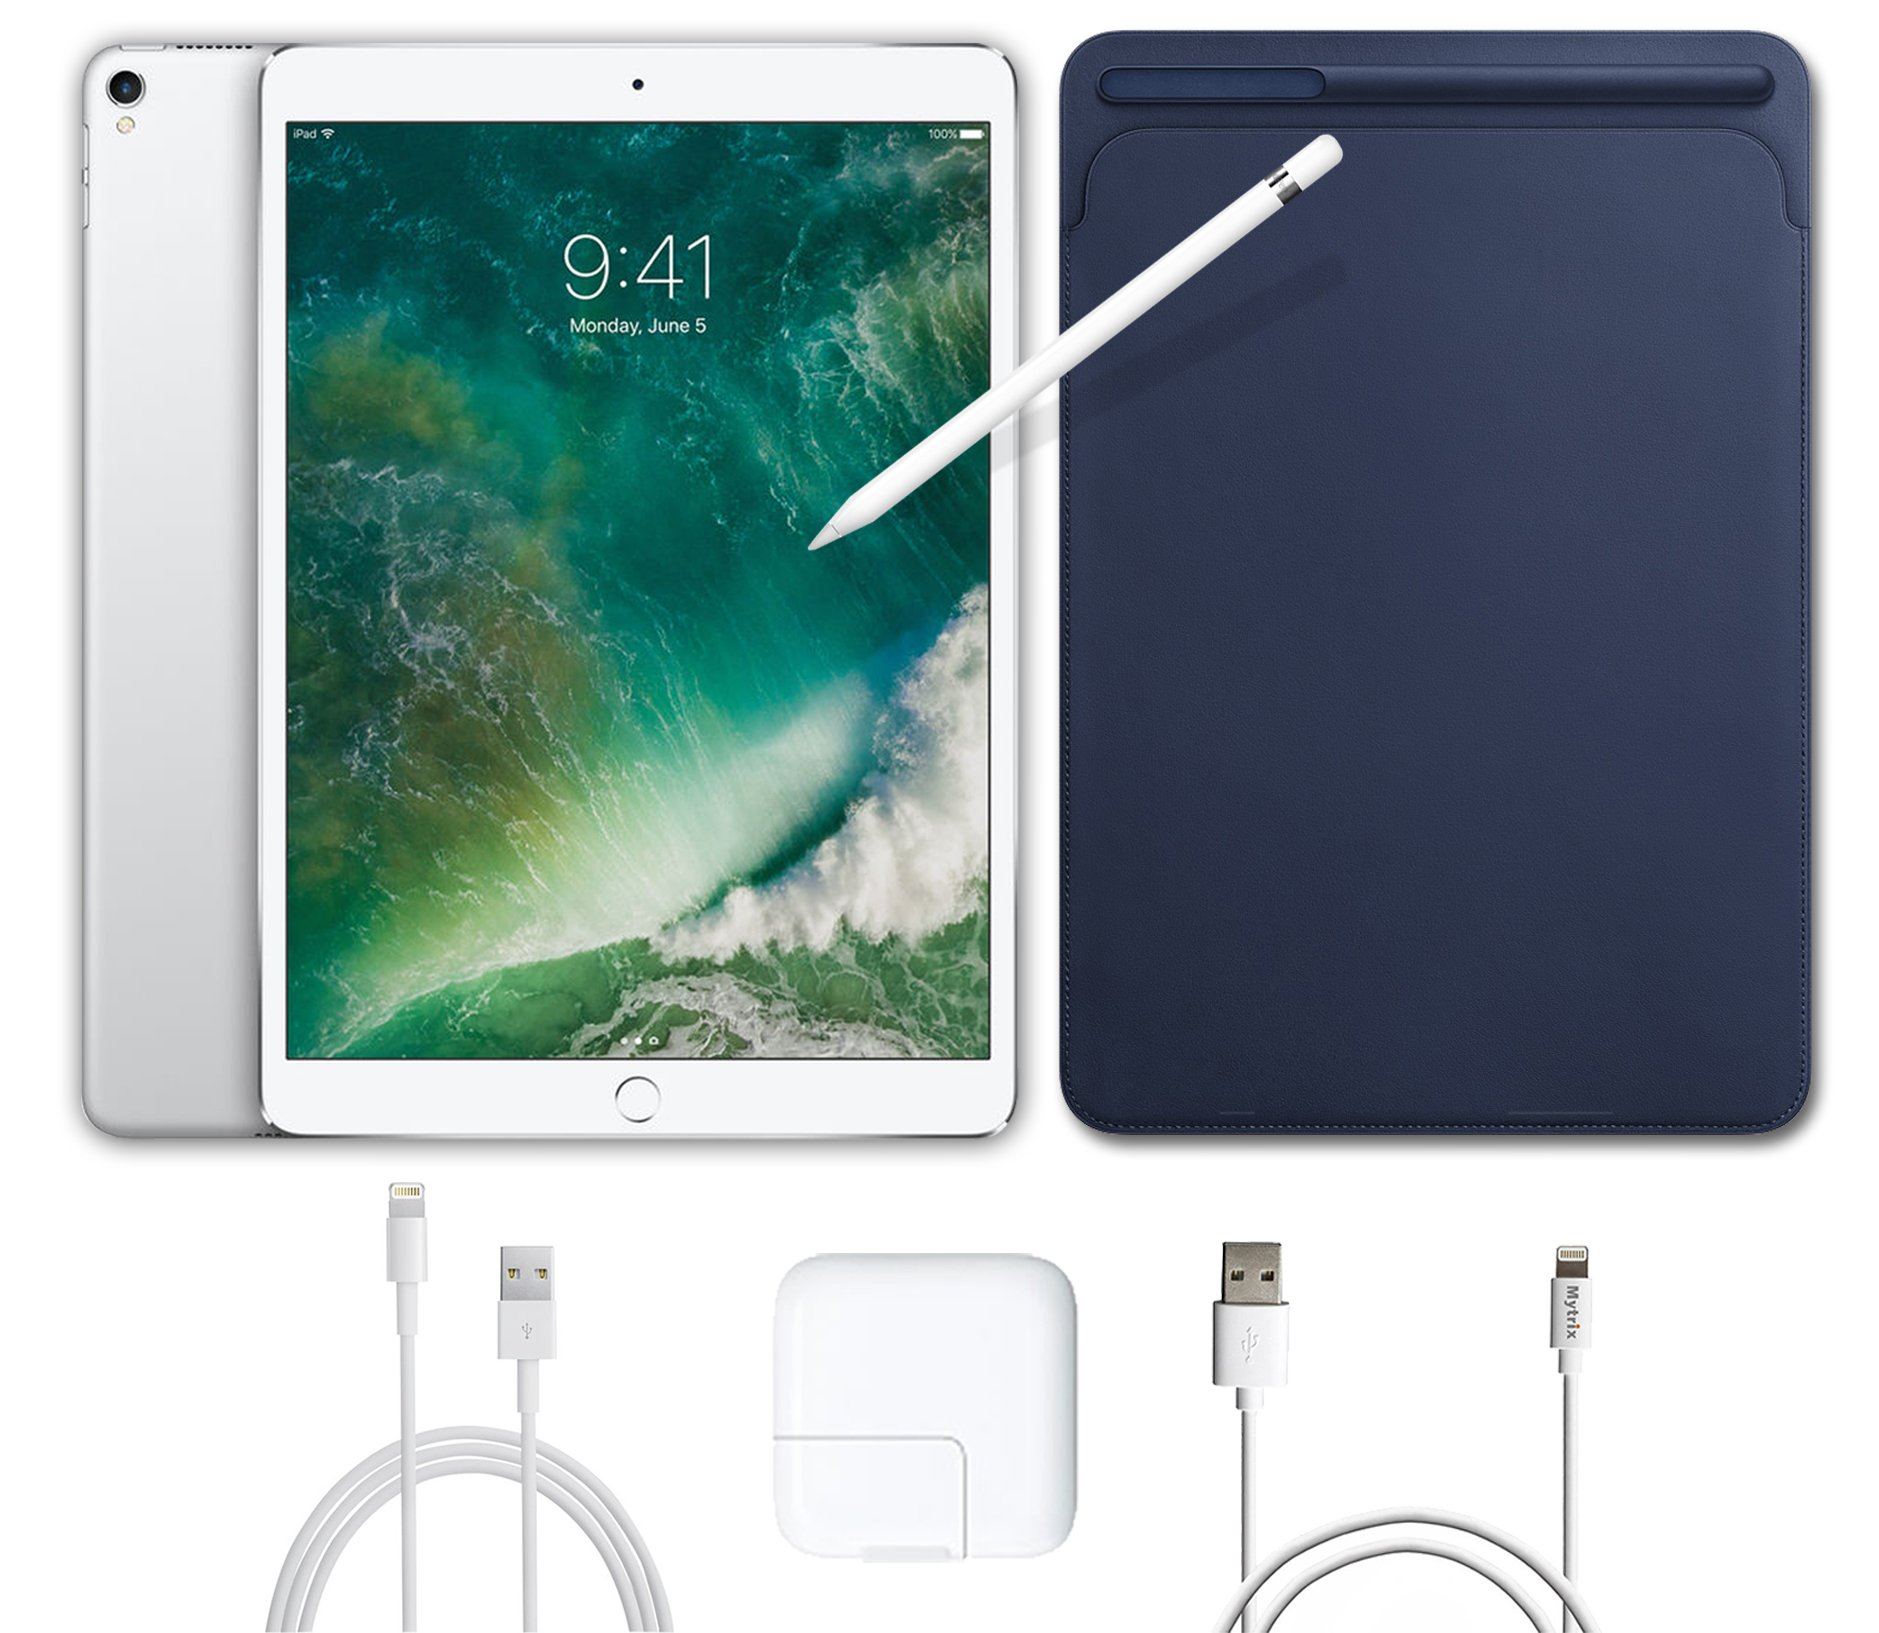 2017 New IPad Pro Bundle (5 Items): Apple 10.5 inch iPad Pro with Wi-Fi 512 GB Silver, Leather Sleeve Midnight Blue, Apple Pencil, Mytrix USB Apple Lightning Cable and All-in-One Travel Charger